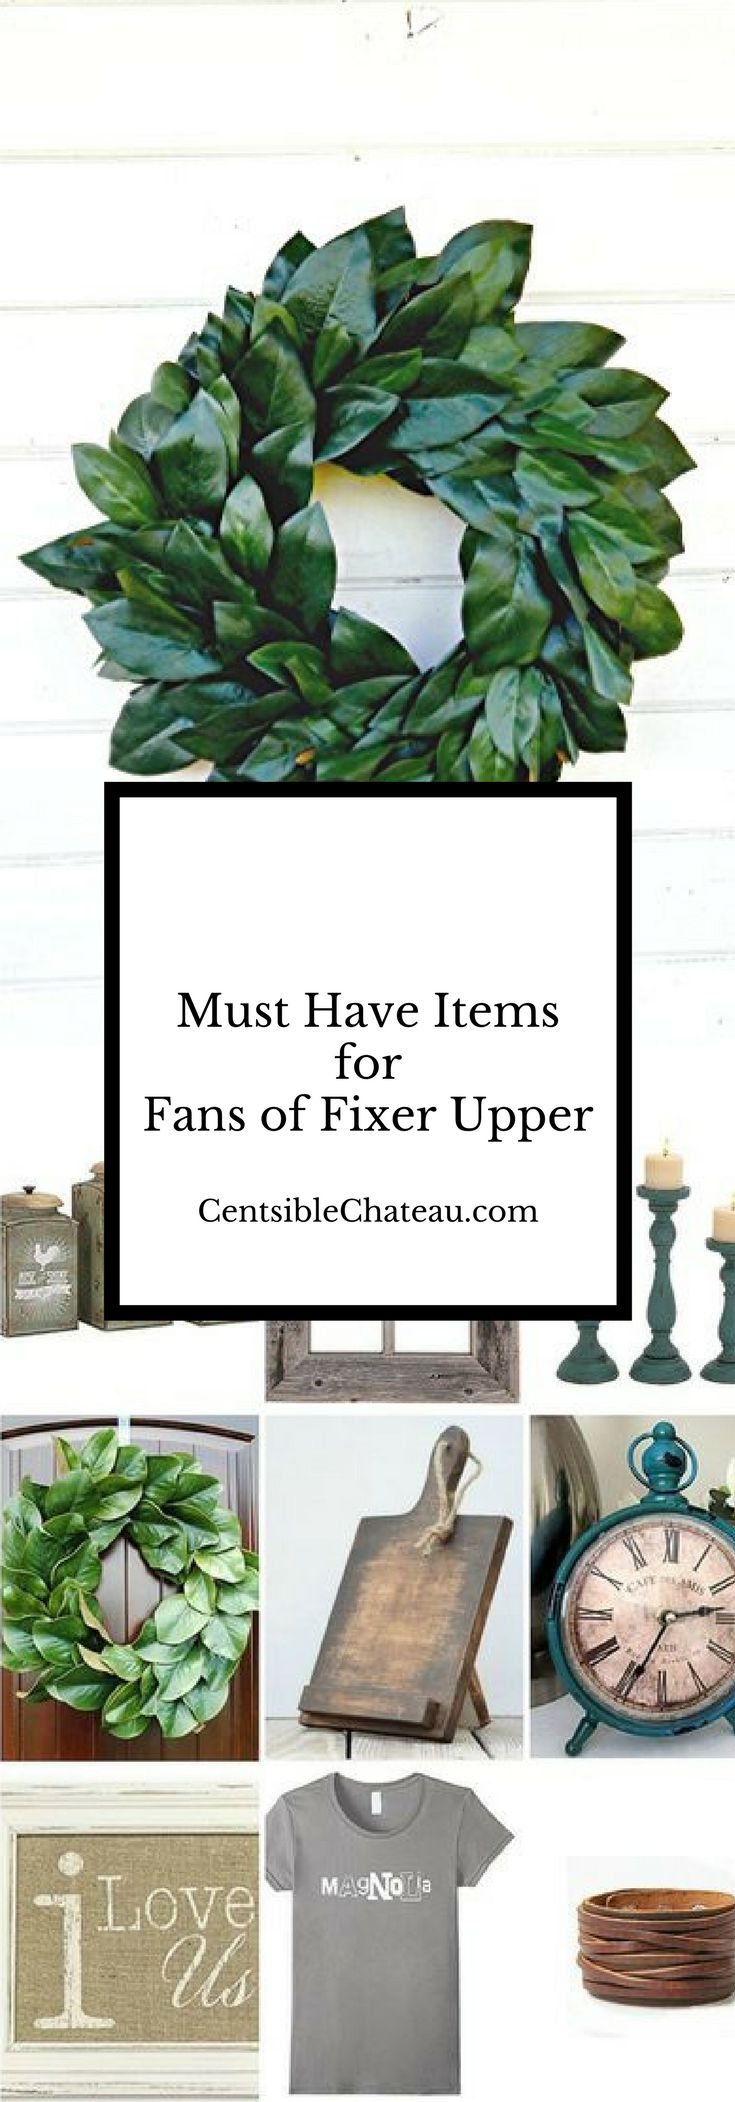 The shopping list all fans of Fixer Upper and Farmhouse Style decor need. Magnolia Wreath, Shiplap T-shirt, candlesticks, boxwood wreath, clocks and more.